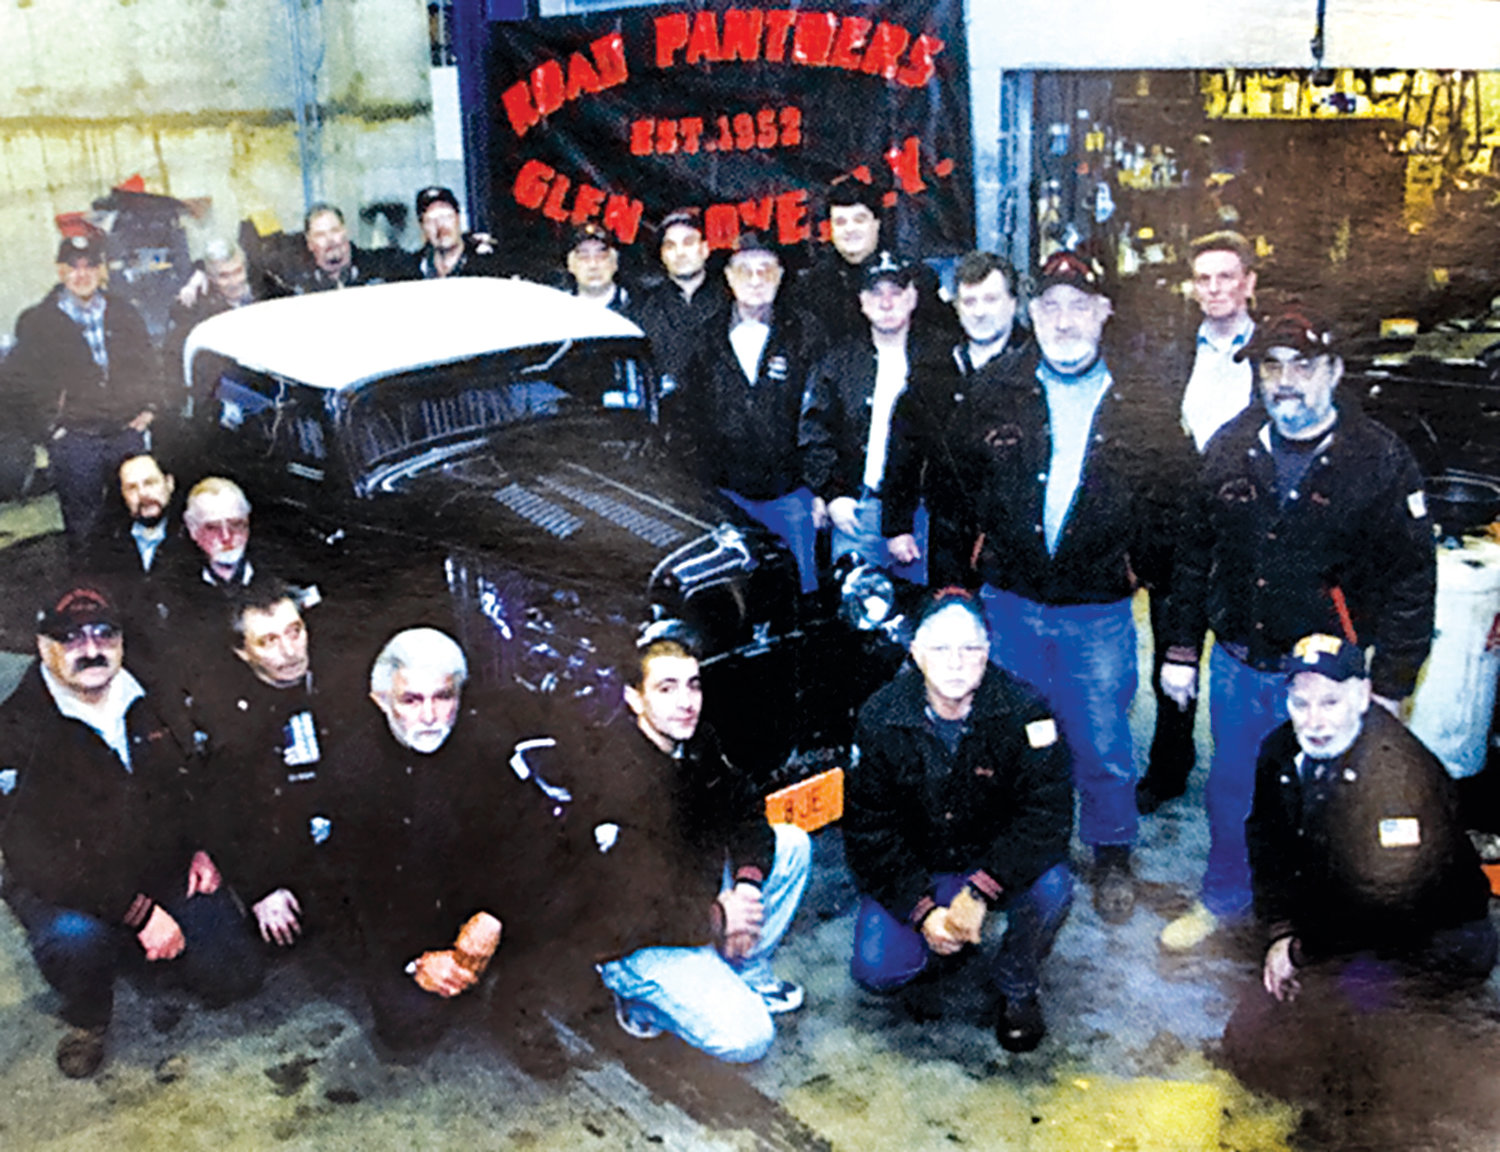 The Road Panthers hot rod club has had dozens of members in its 67 years in G.C.